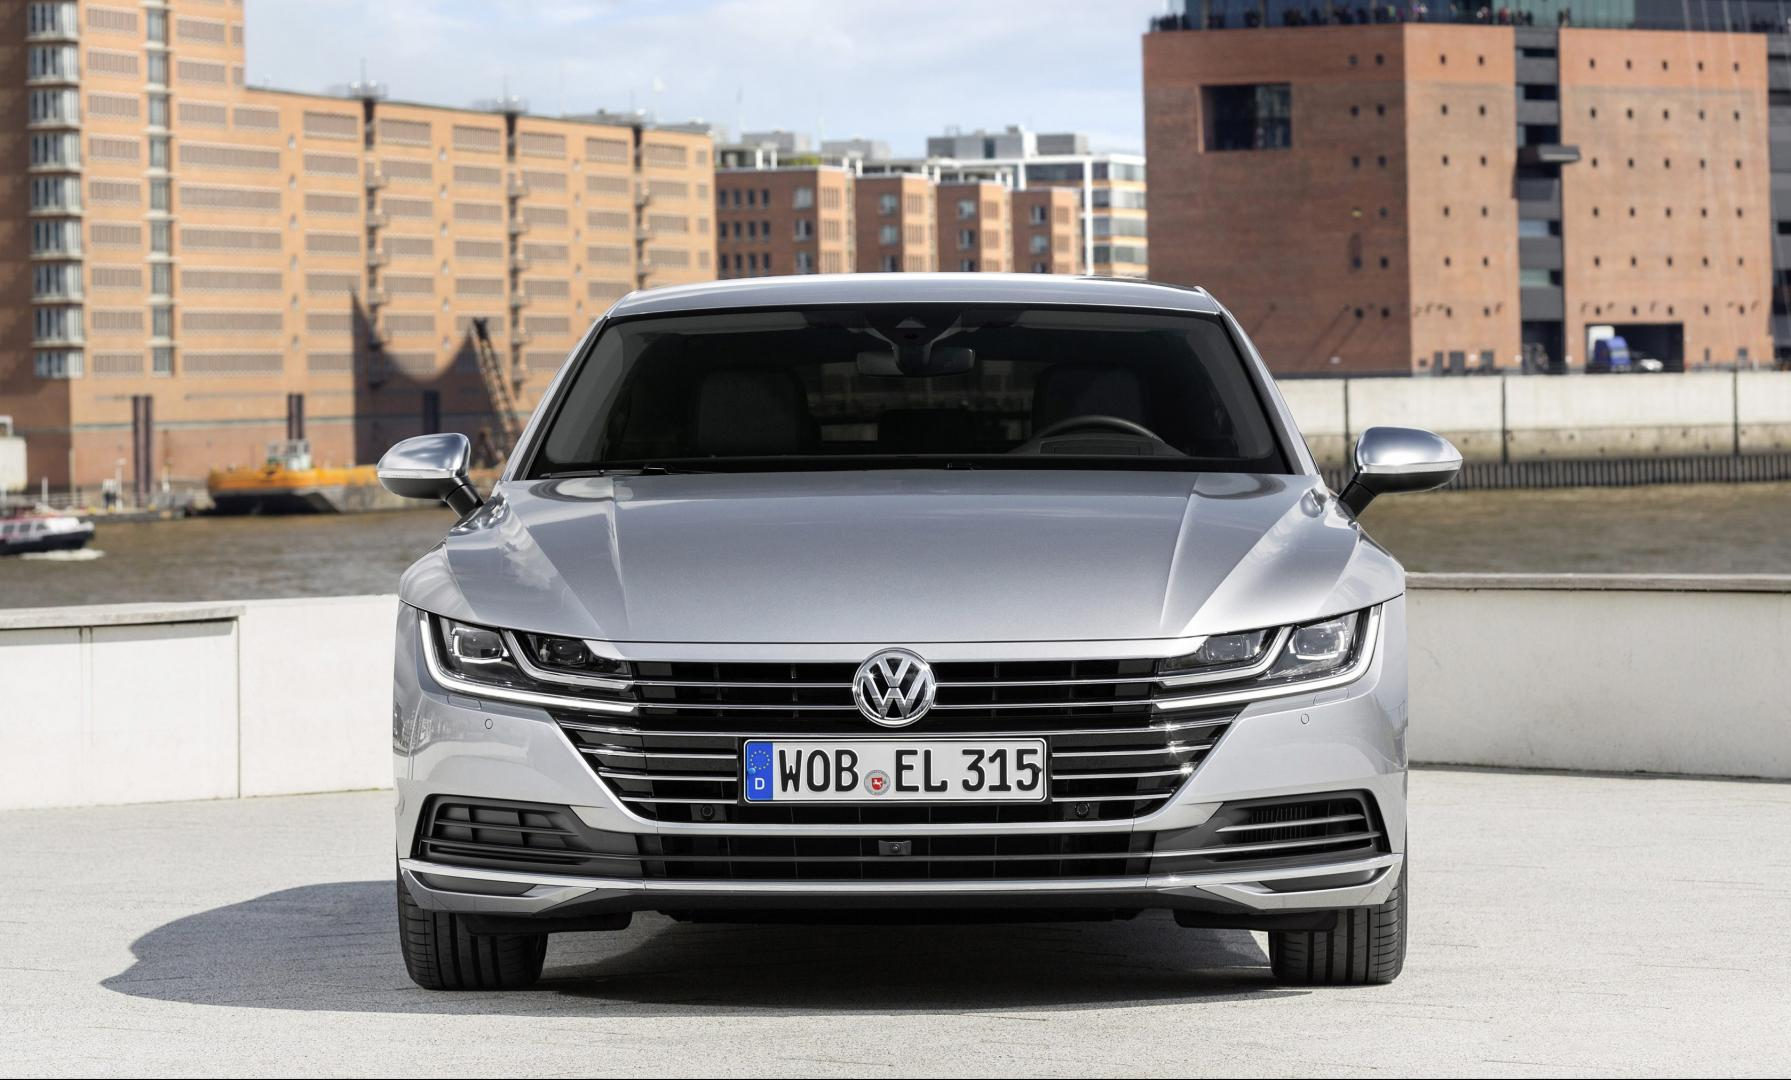 volkswagen arteon 1 5 tsi elegance business 2018 test en specificaties. Black Bedroom Furniture Sets. Home Design Ideas